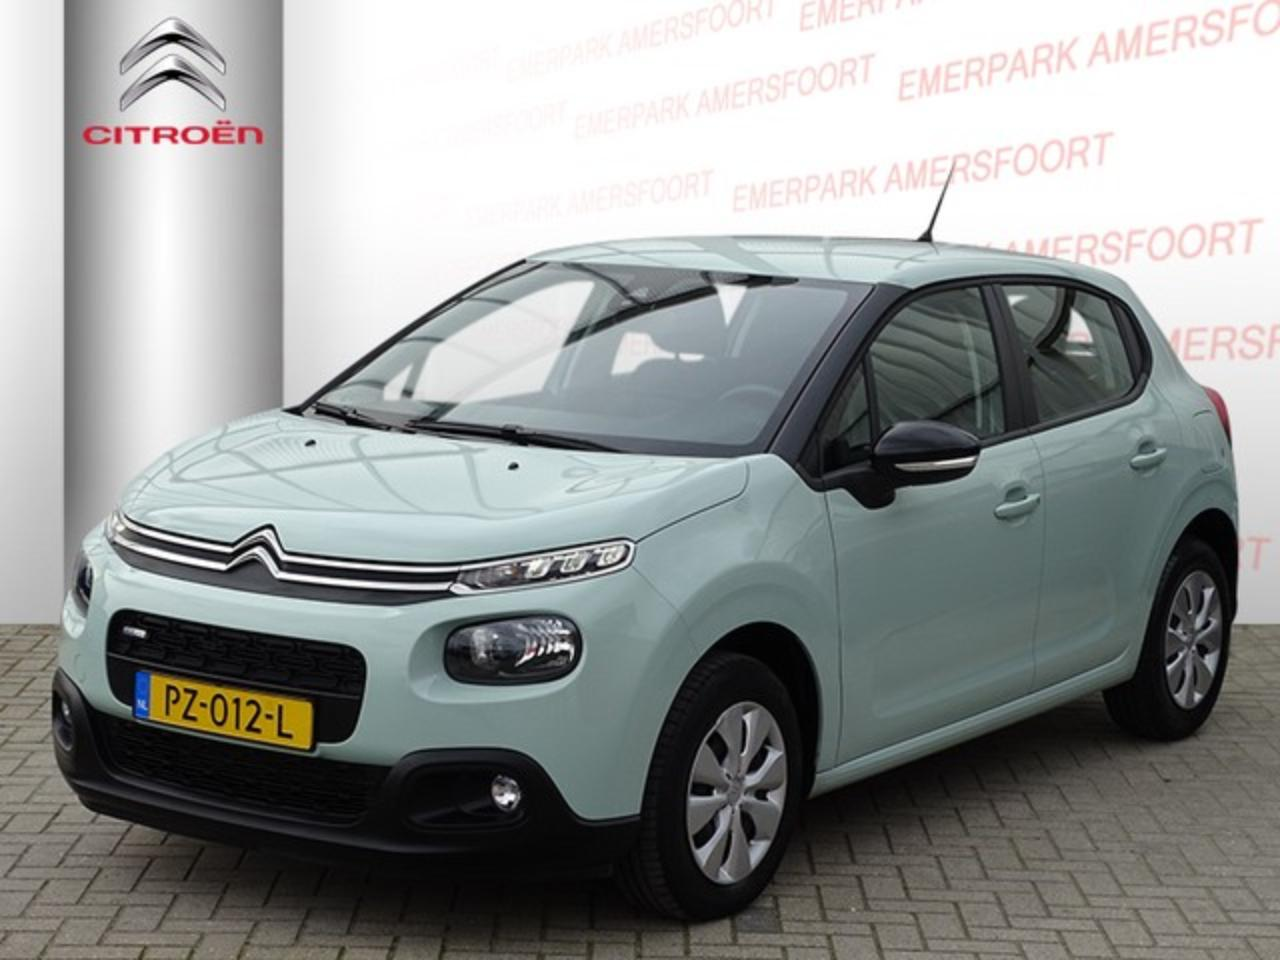 Citroën C3 Feel 1.2 82pk Airconditioning | Bluetooth | Lage k